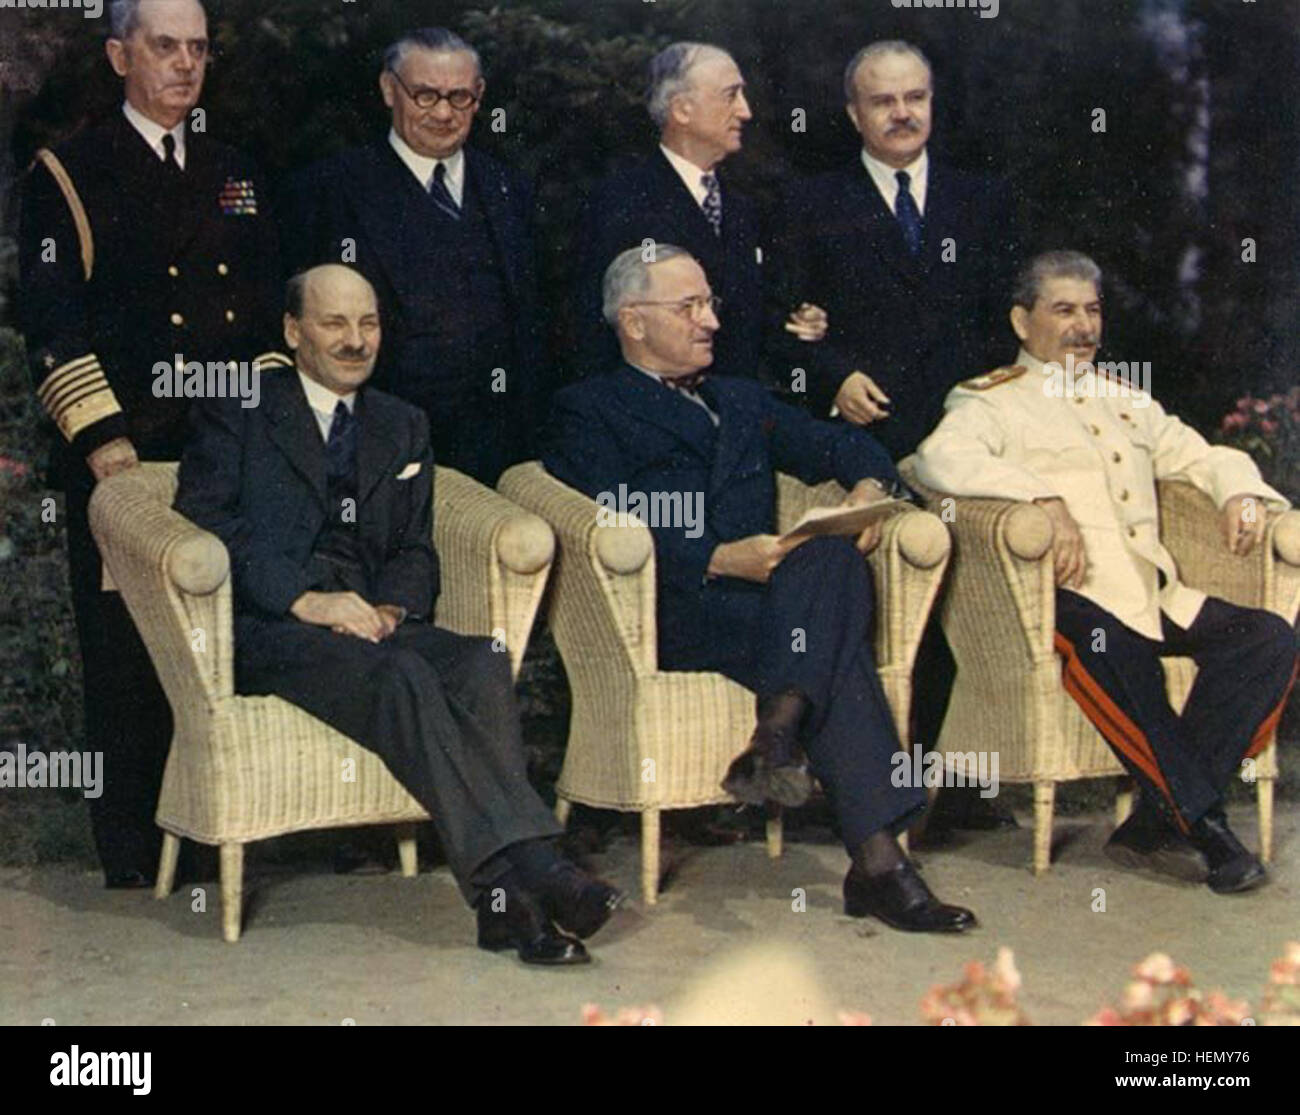 Clement Attlee, Harry S. Truman, Joseph Stalin and their principal advisors - Potsdam Conference 1945 - Stock Image